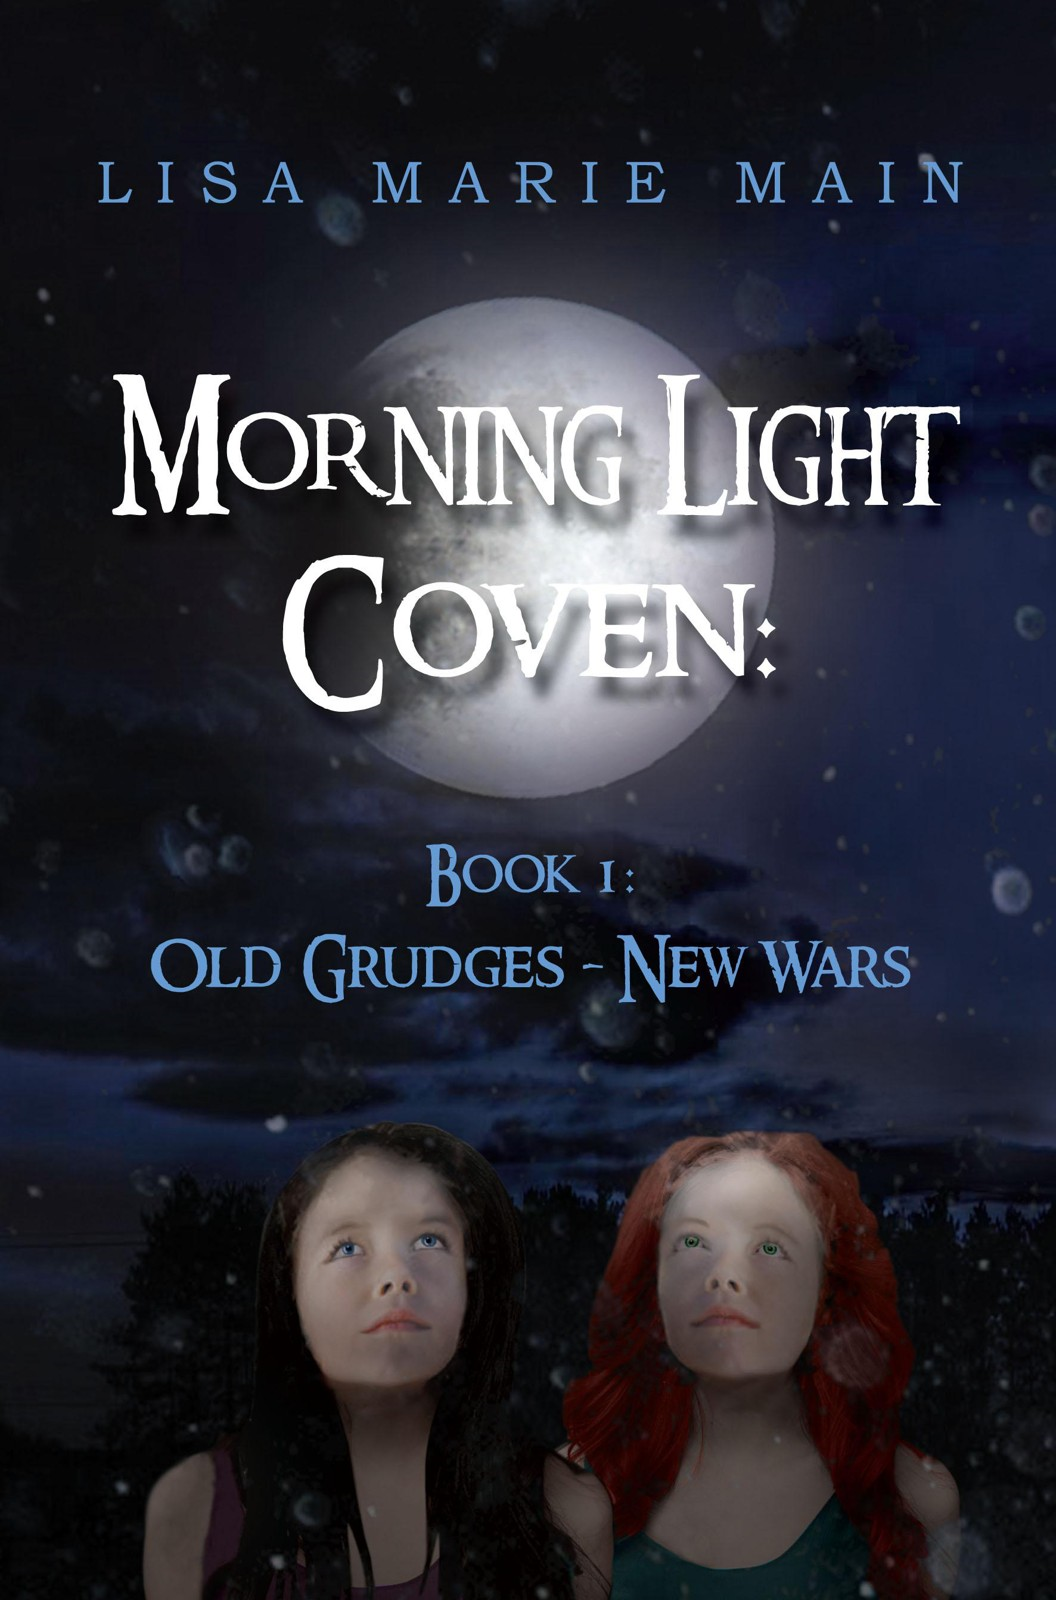 Morning Light Coven: Book 1: Old Grudges - New Wars